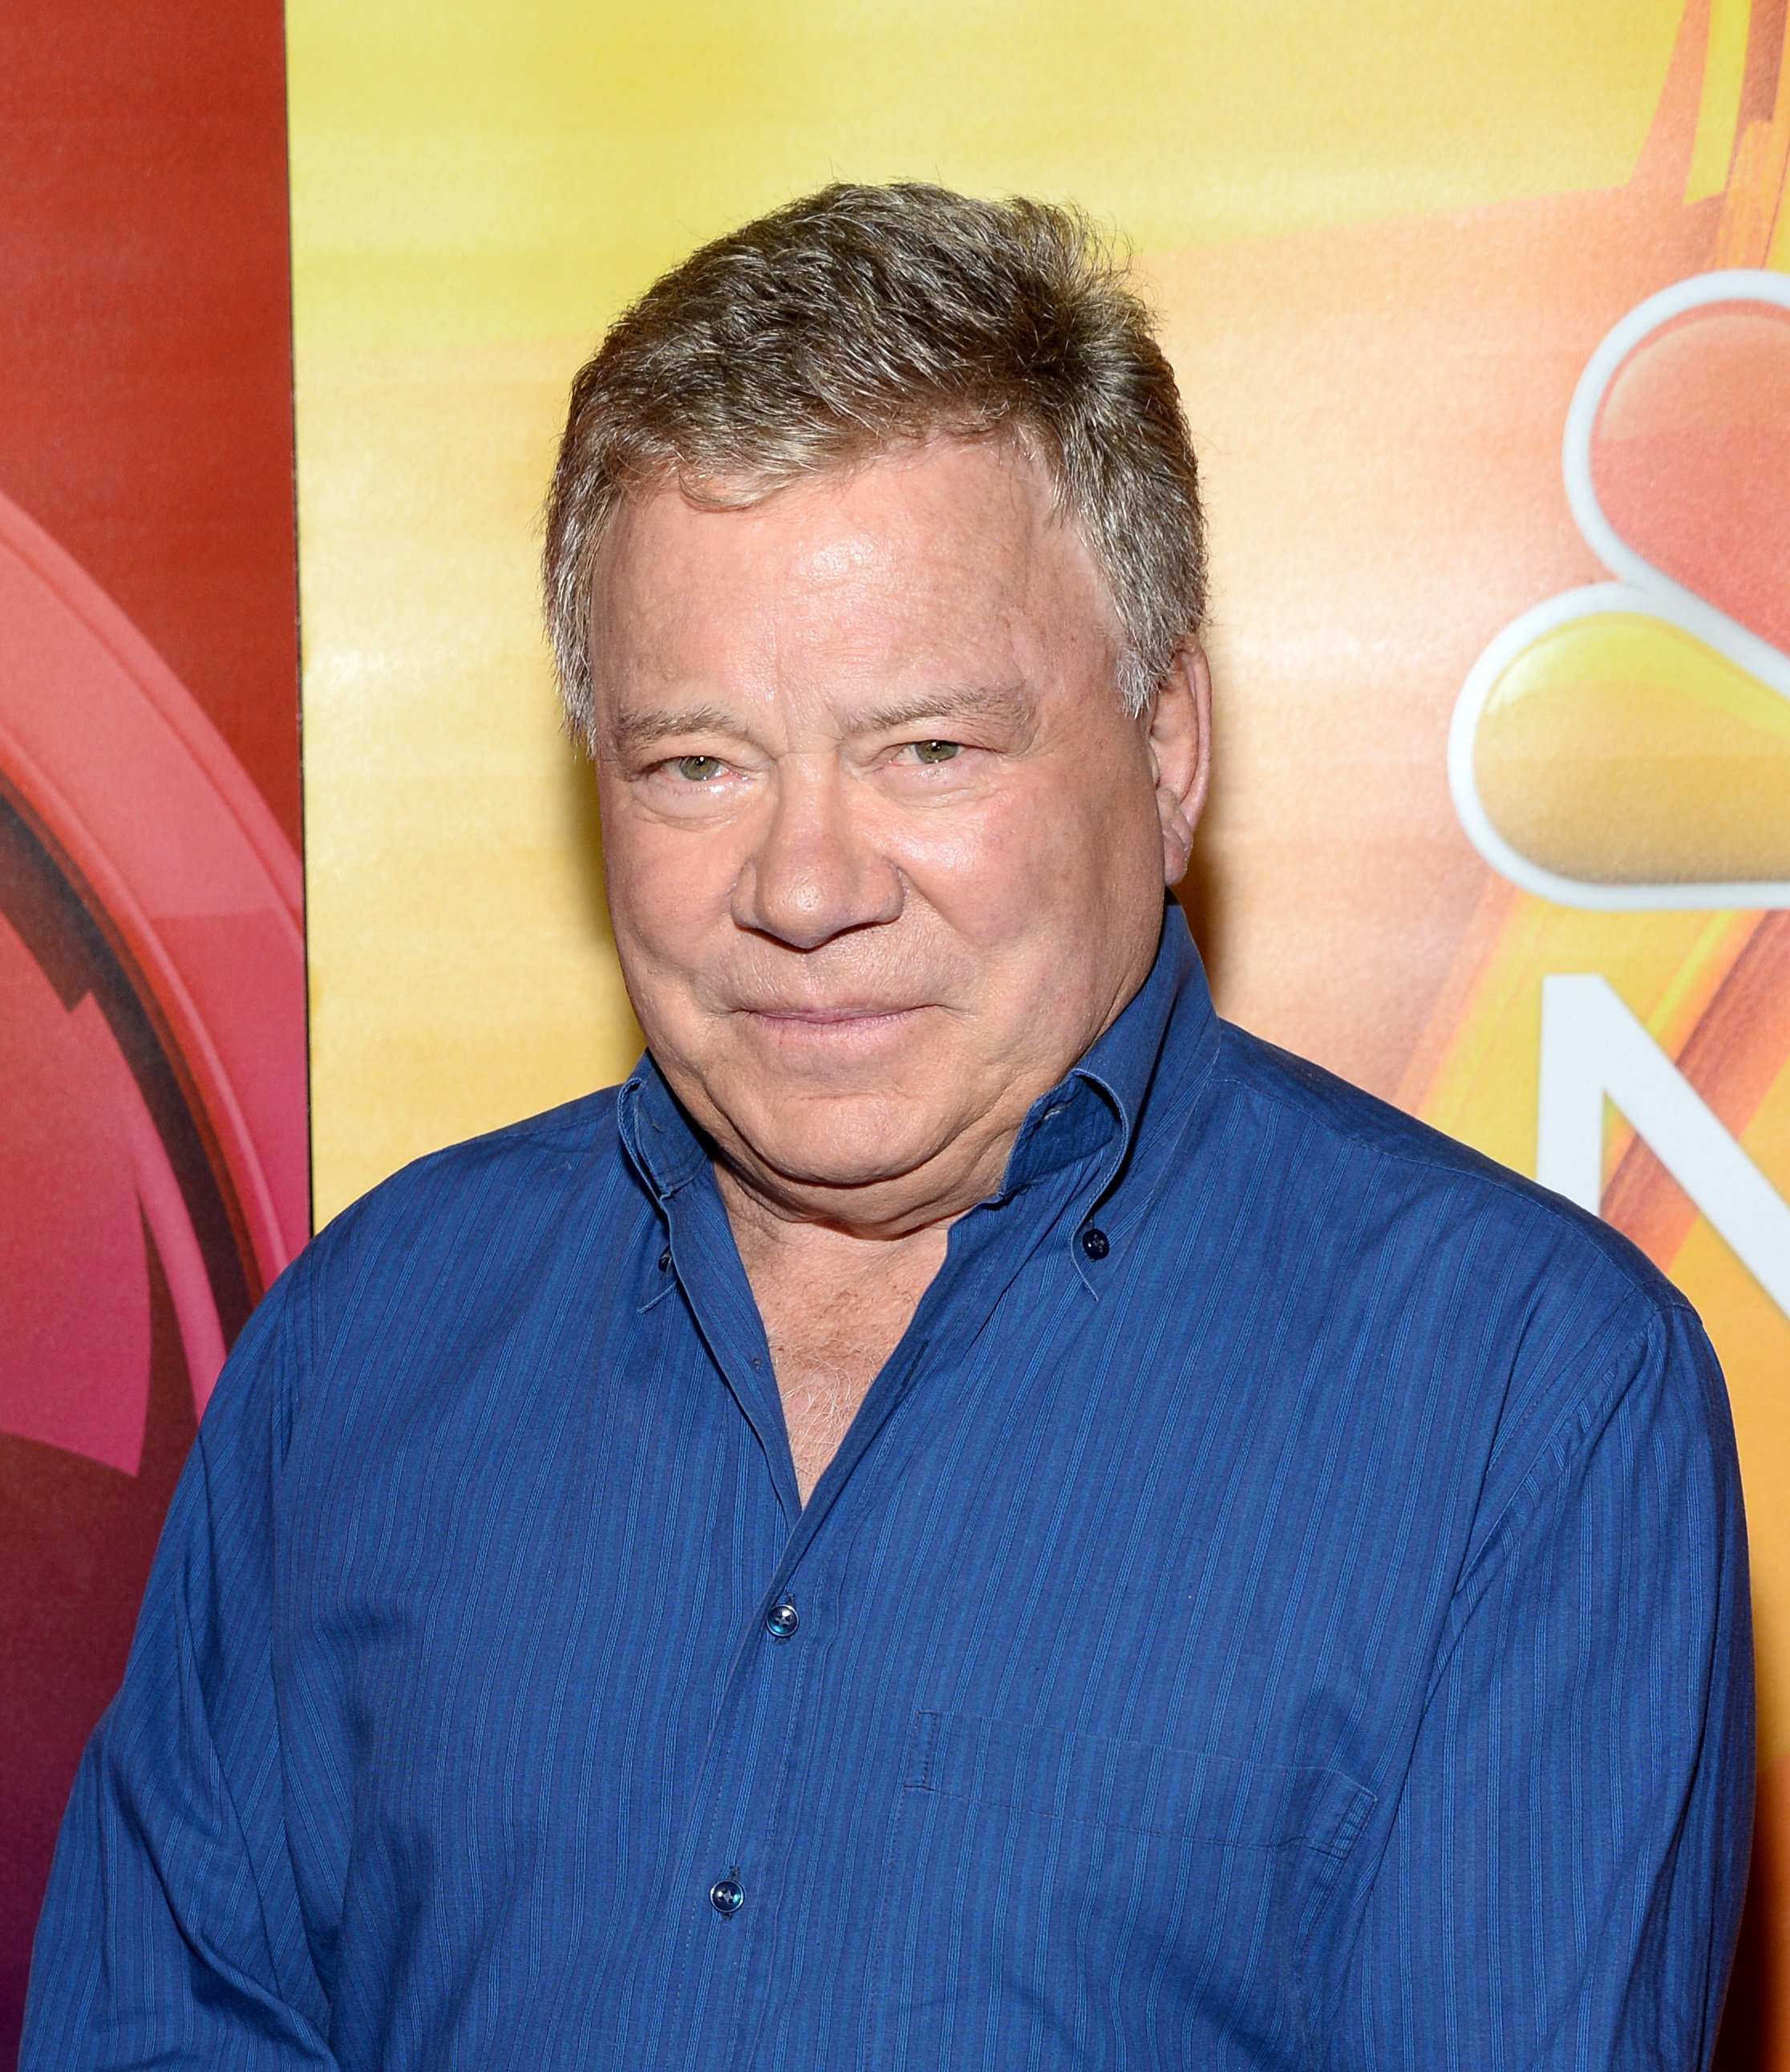 William Shatner attends the NBCUniversal press day during the 2016 Summer TCA Tour at The Beverly Hilton Hotel on August 2, 2016 | Photo: GettyImages